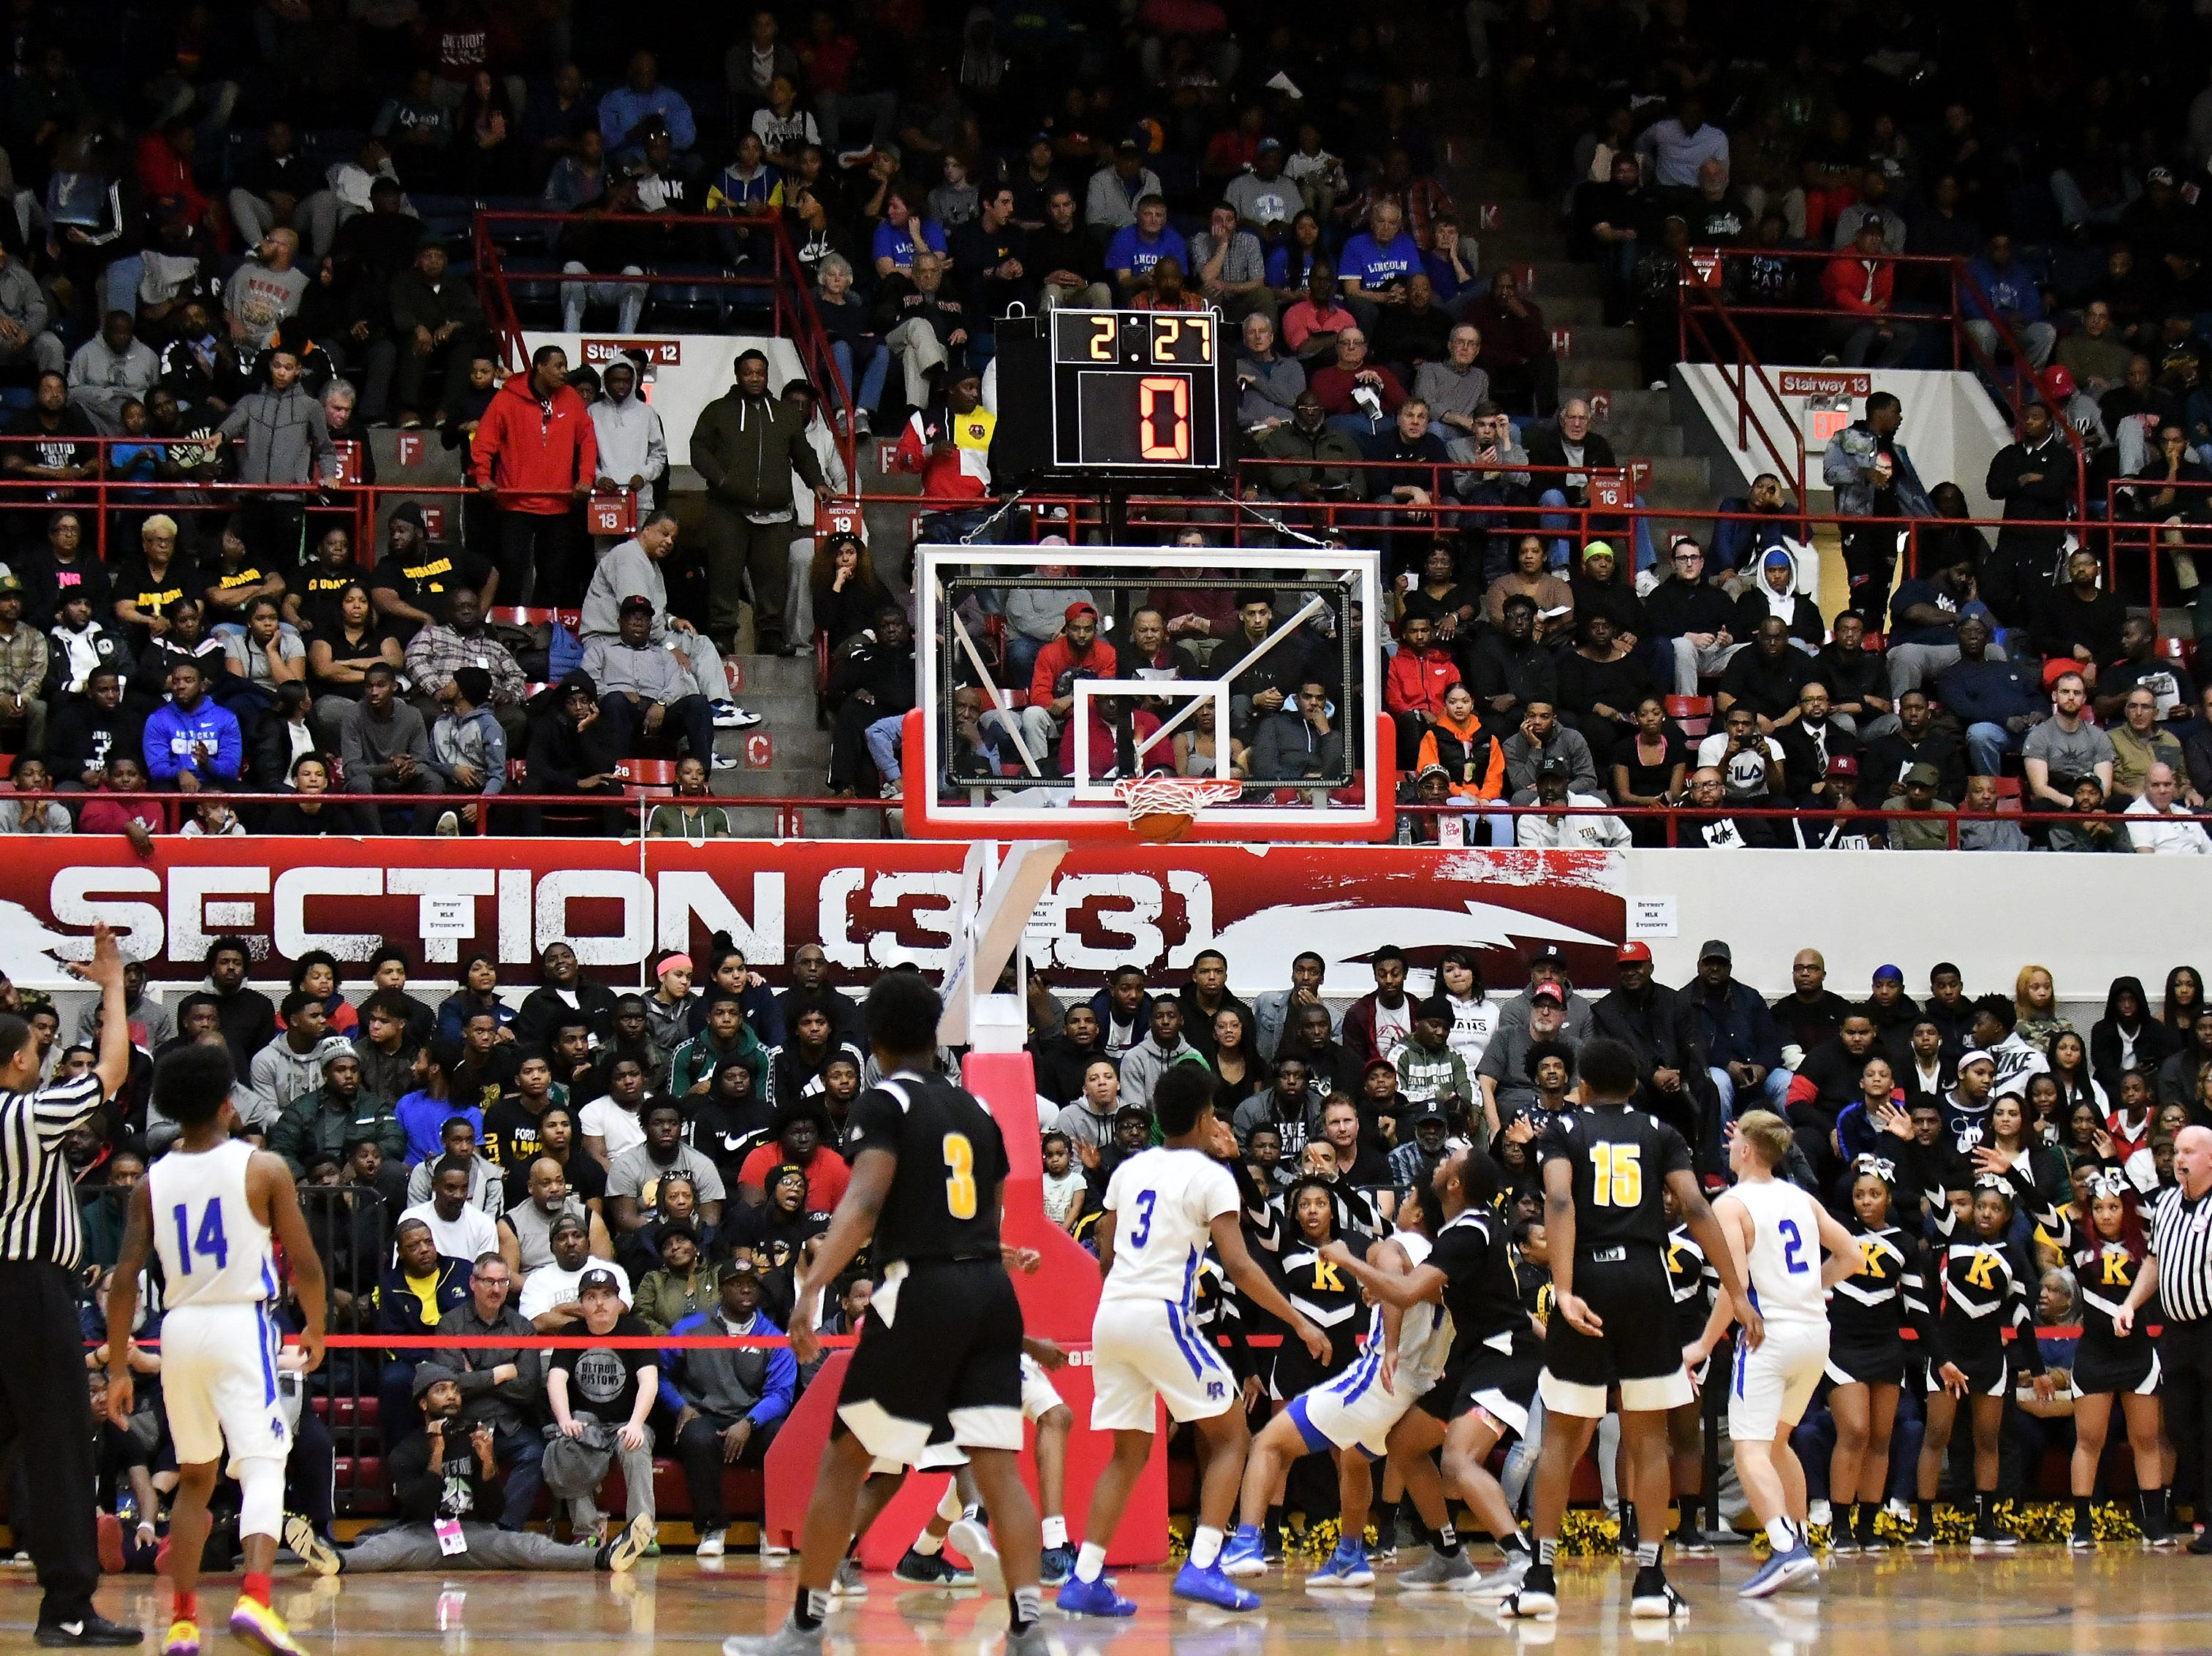 A packed house watches a King shot go in during the second half.